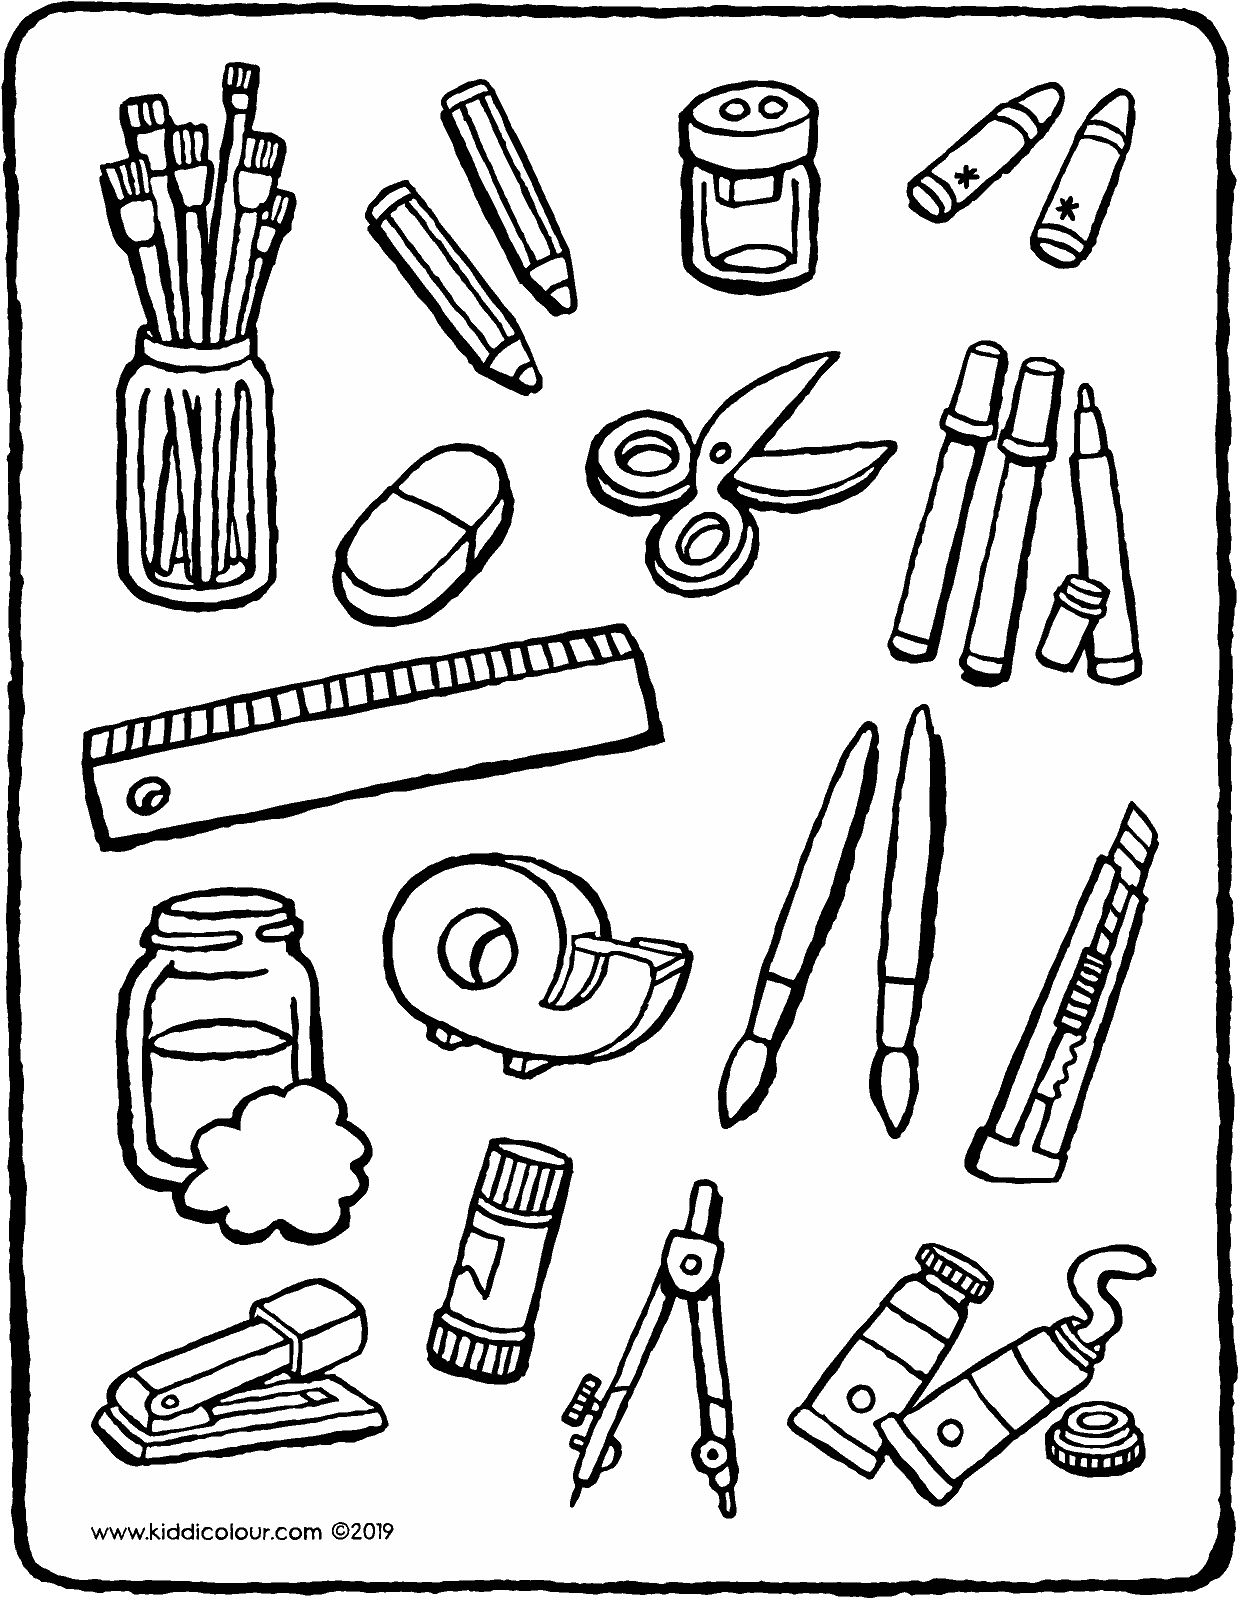 all sorts of craft equipment colouring page drawing picture 01V